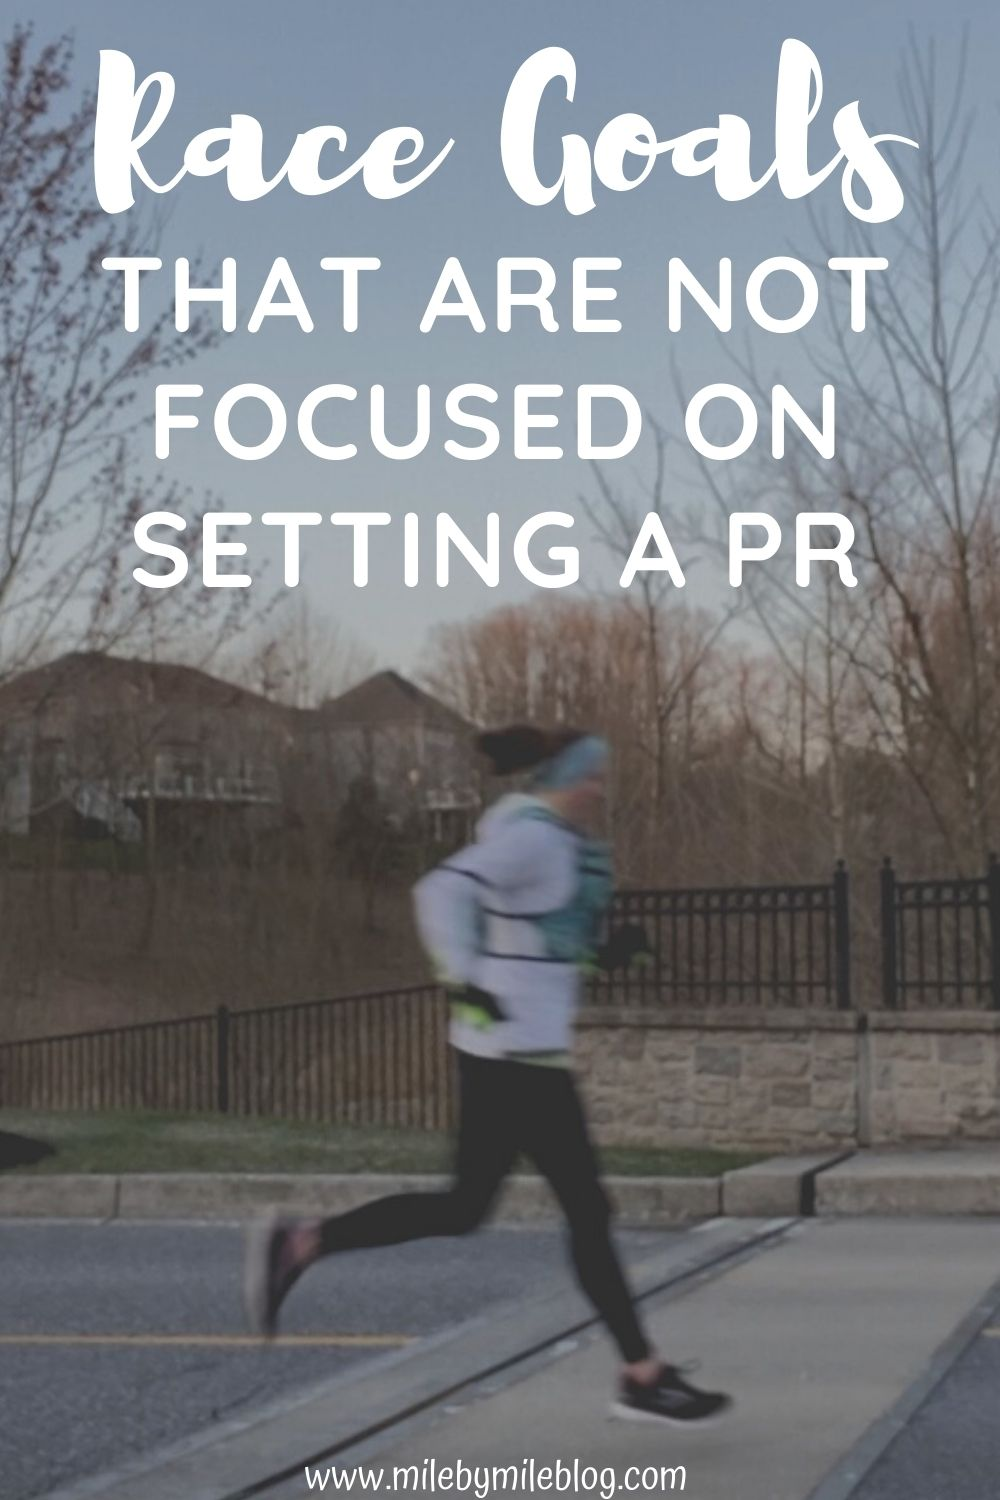 Most runners go into a race hoping to set a PR (or personal record). However, there are many other race goals that you can focus on, especially if you race often or are not in peak racing shape. Focusing on other types of race goals can be great for working on other skills like pacing, fueling, or just enjoying the race environment!